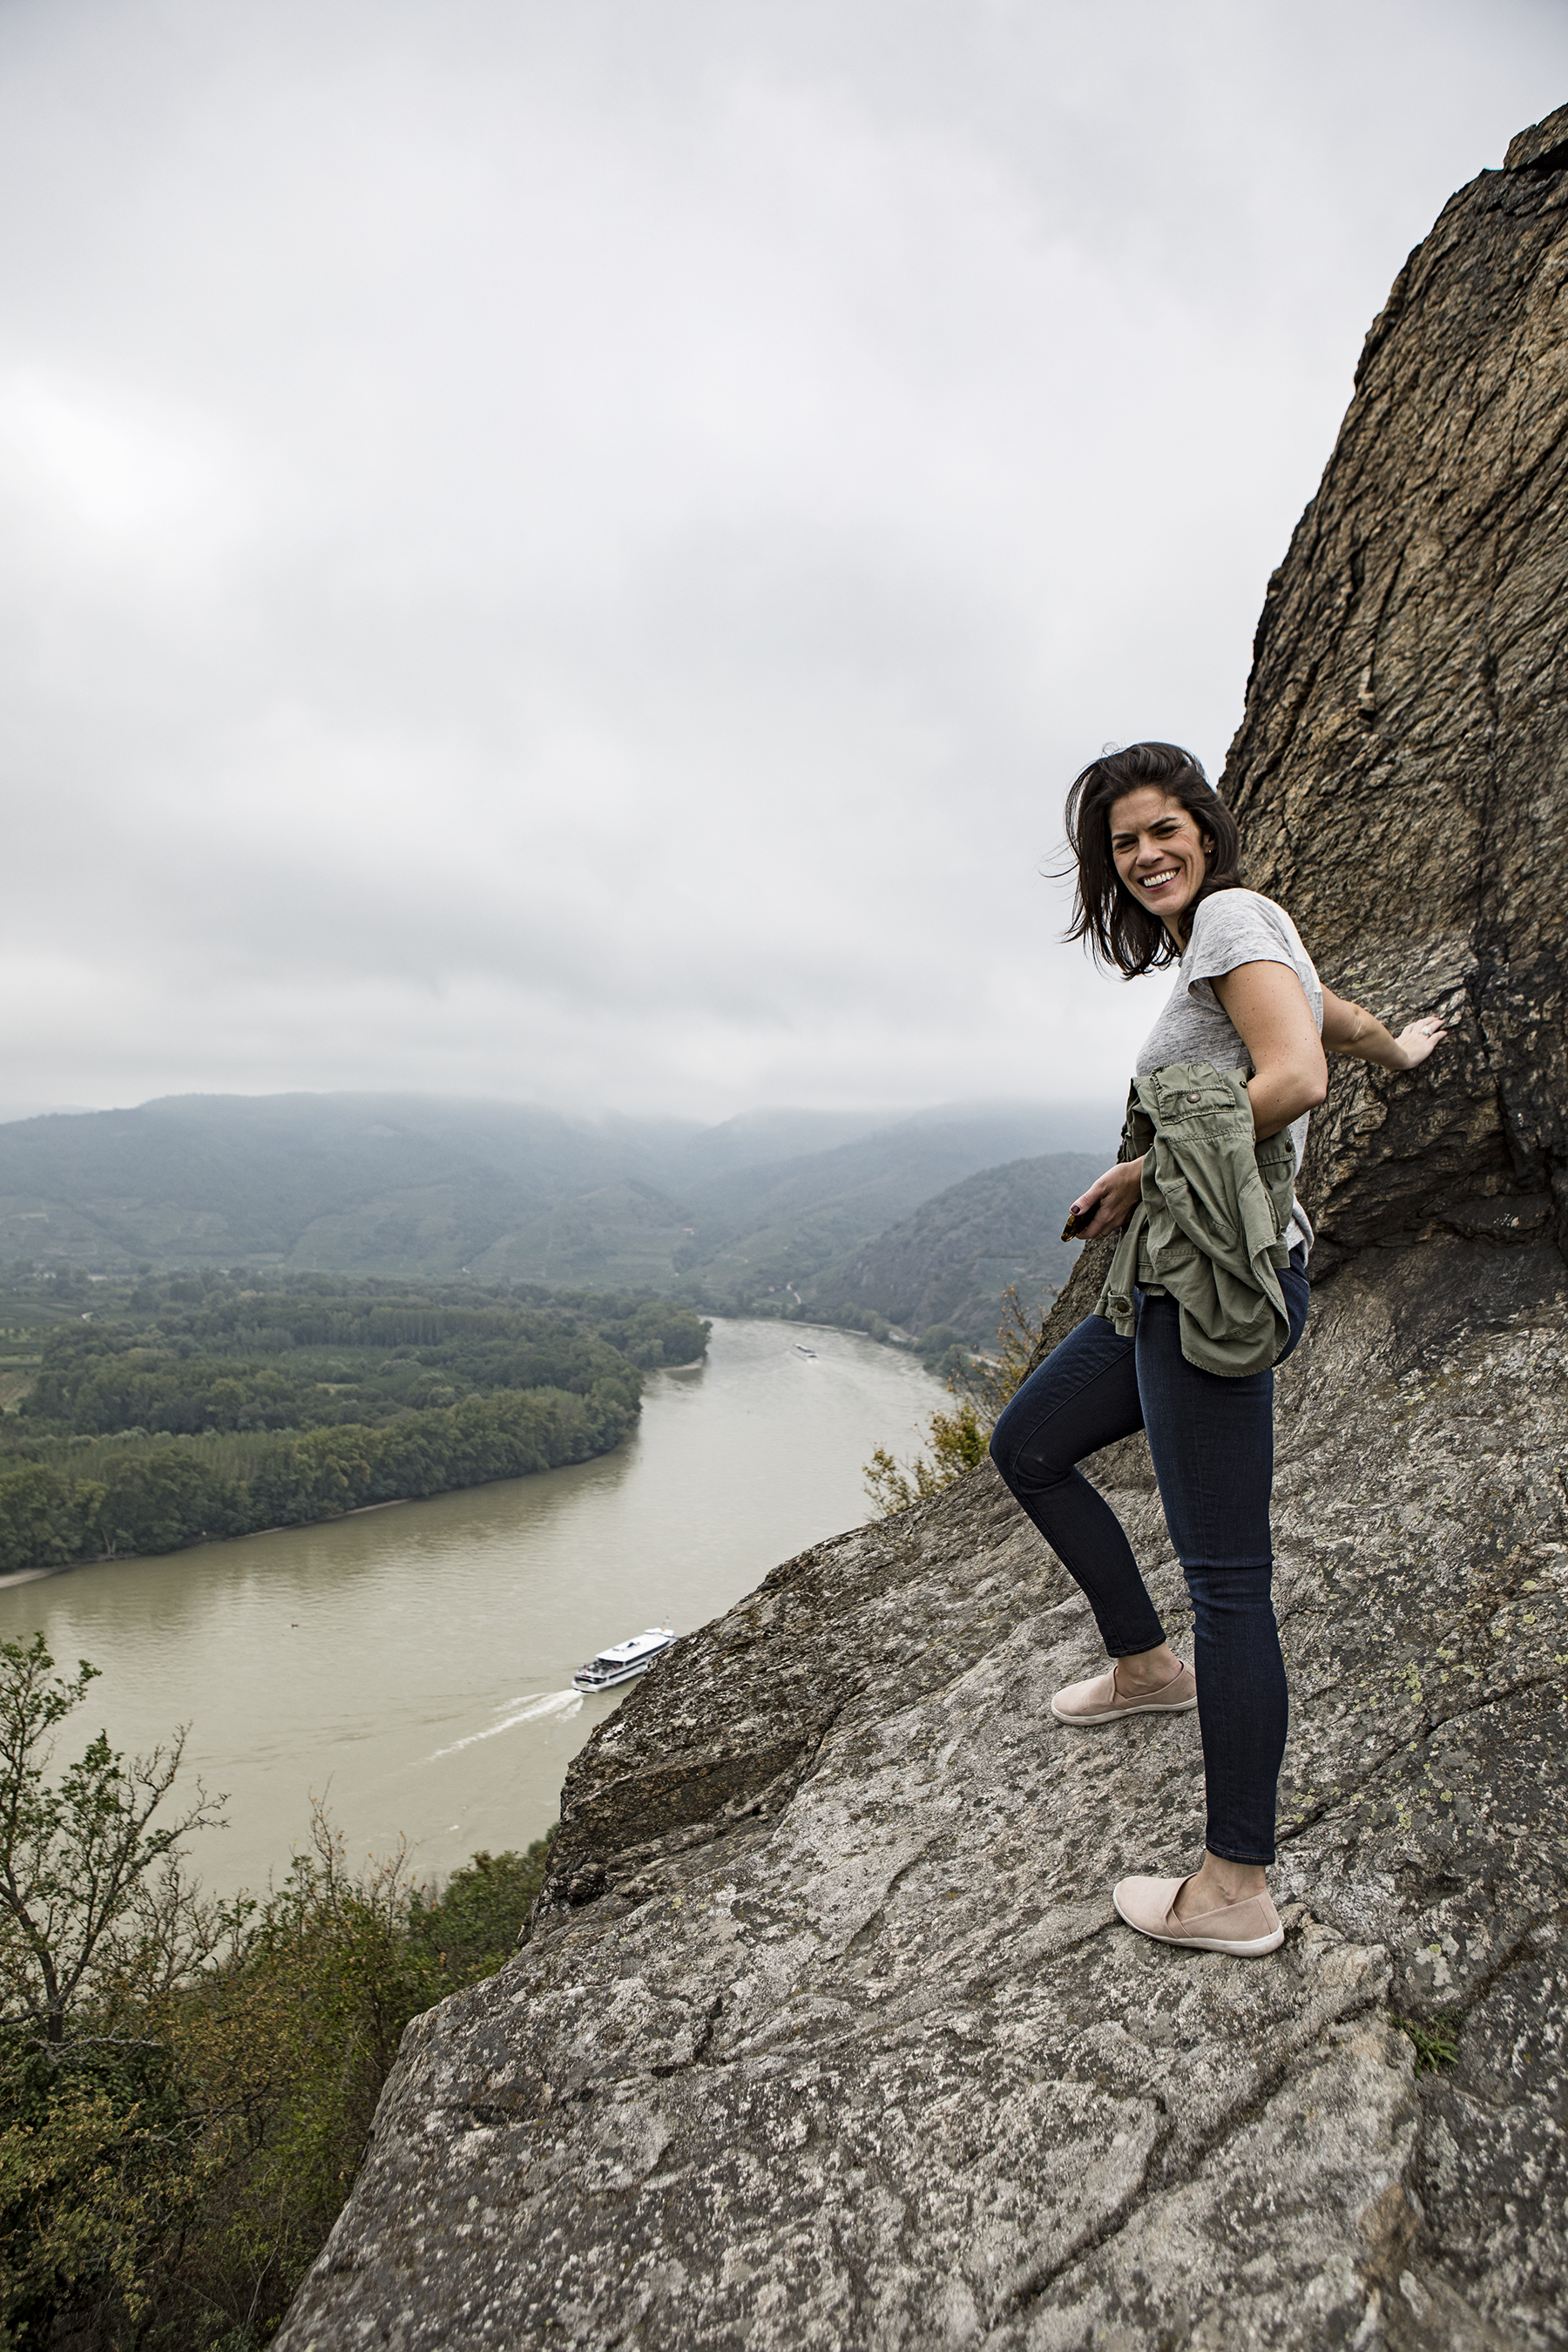 Sloane overlooking the Danube from the base of Durnstein Castle.